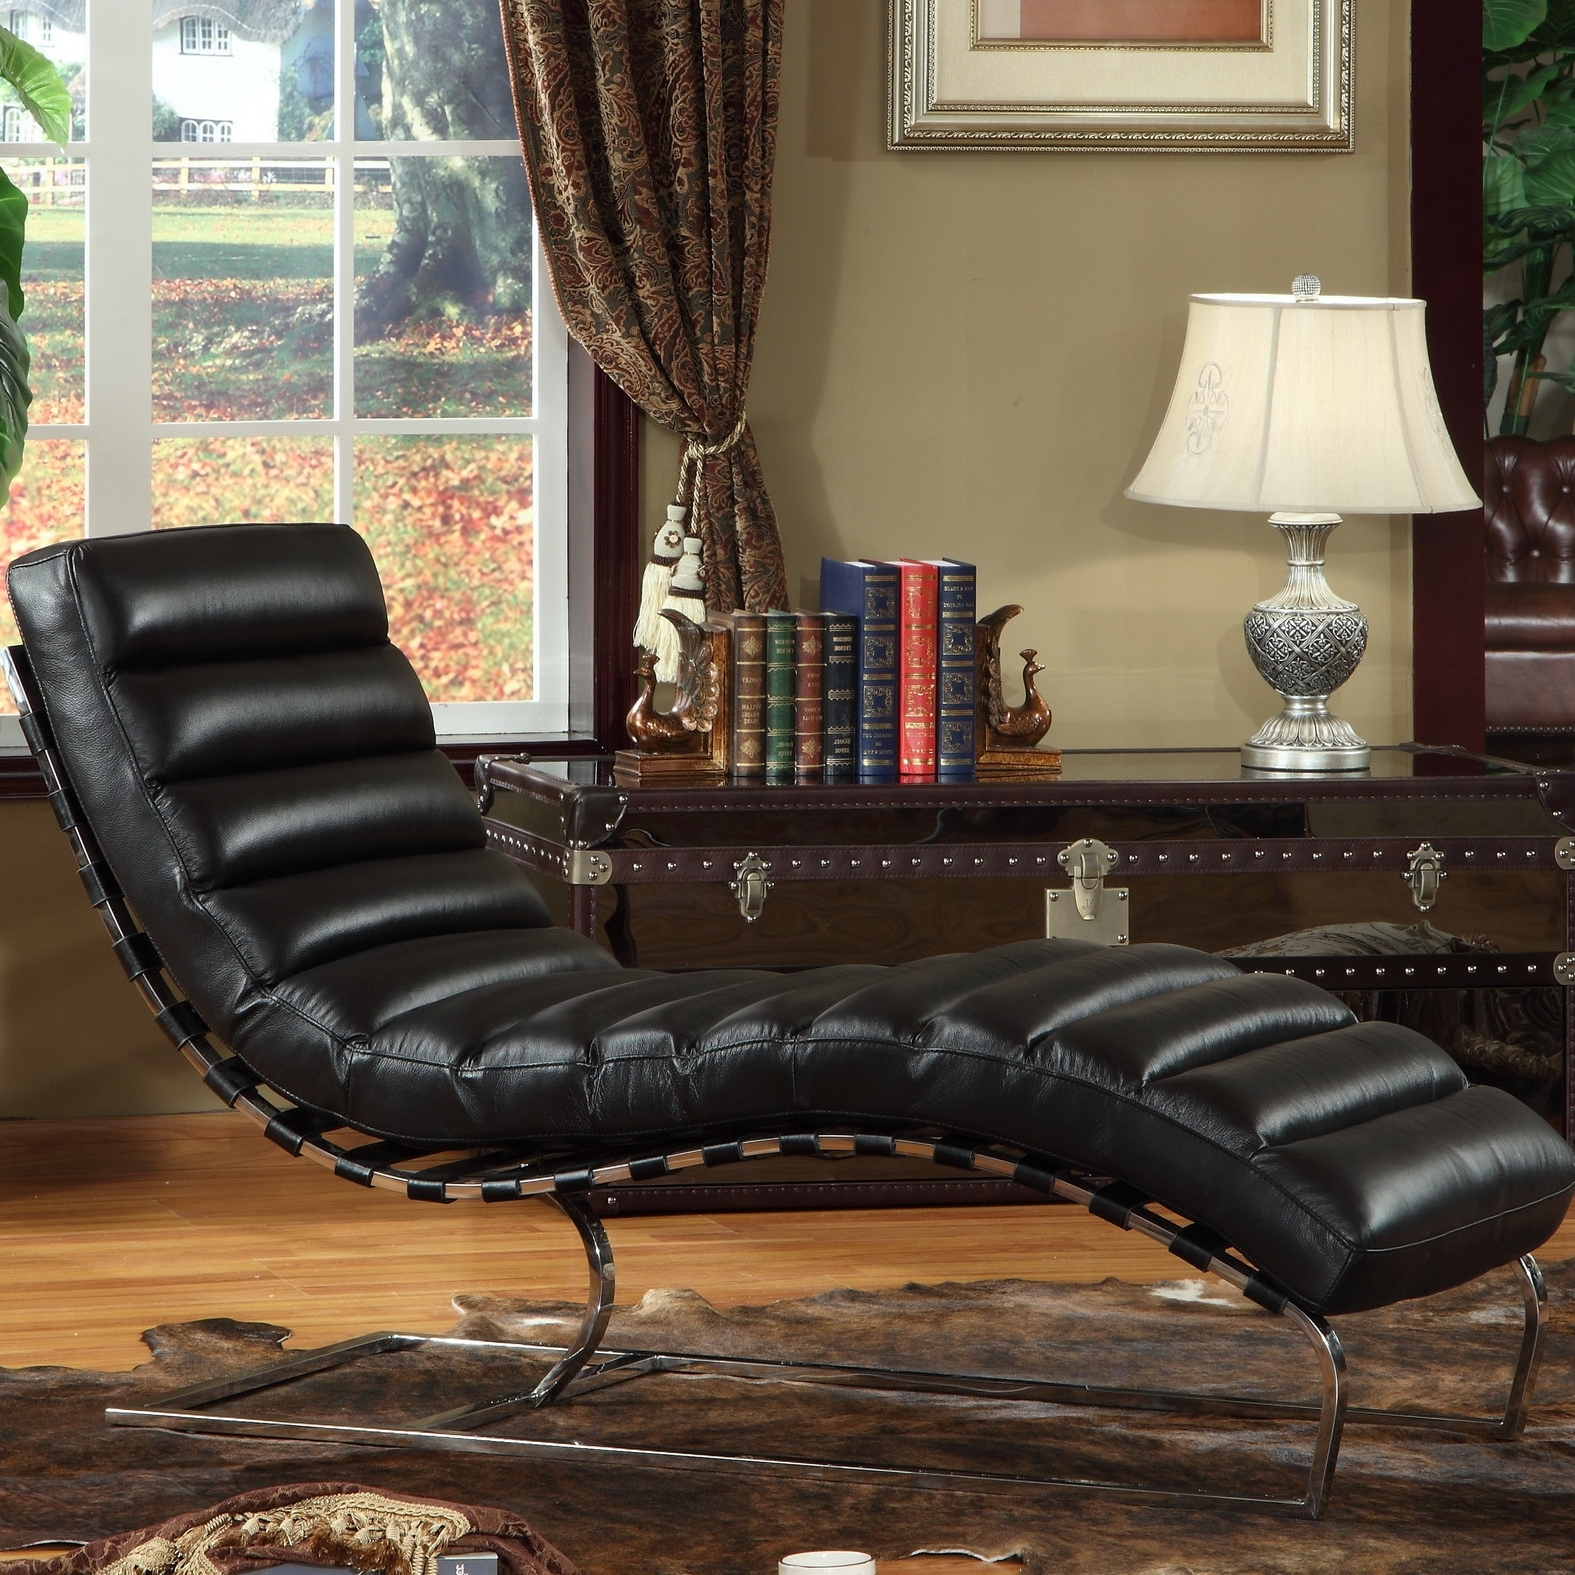 Furniture: Alluring Leather Chaise With Unique Design — Agisee In Well Liked Leather Chaises (View 6 of 15)